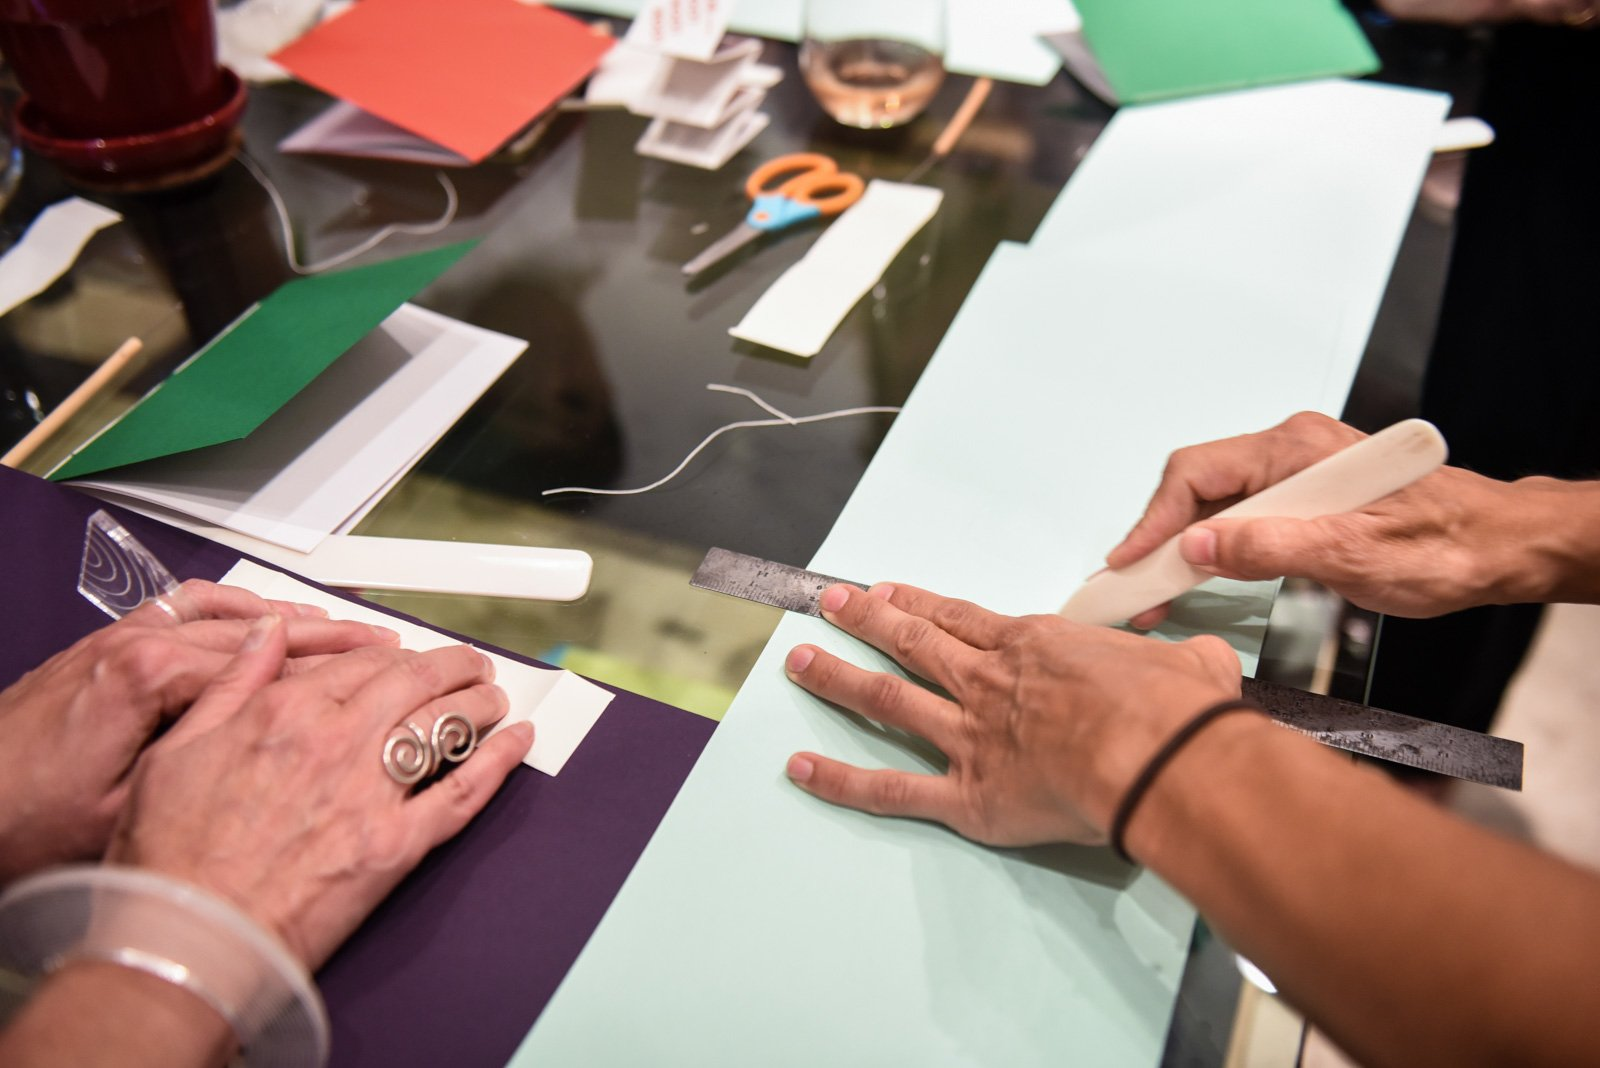 Two pairs of hands set on a table holding bone folders and folding paper.